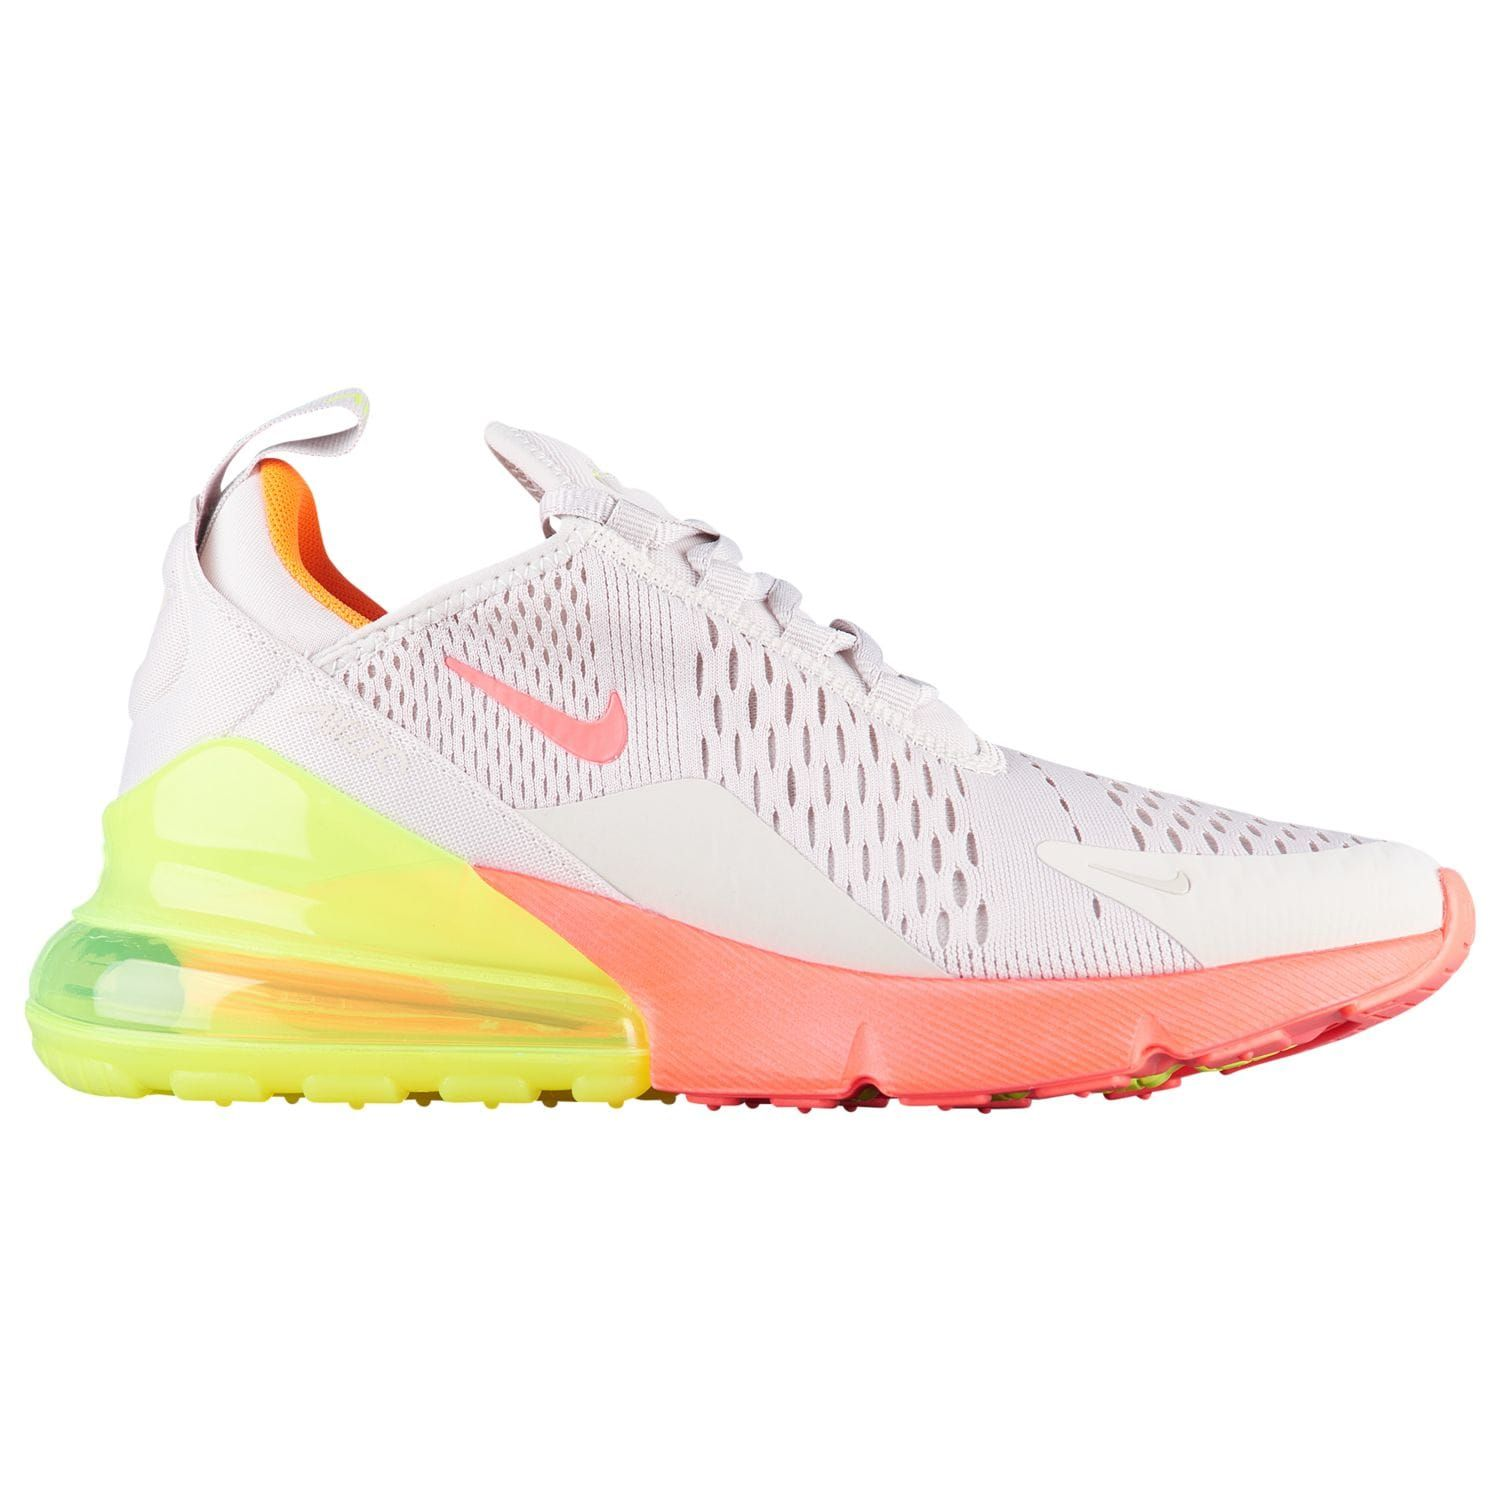 b6f199052 Nike Air Max 270 - Women's - Running - Shoes - Desert Sand/Hot  Punch/Volt/Total Orange